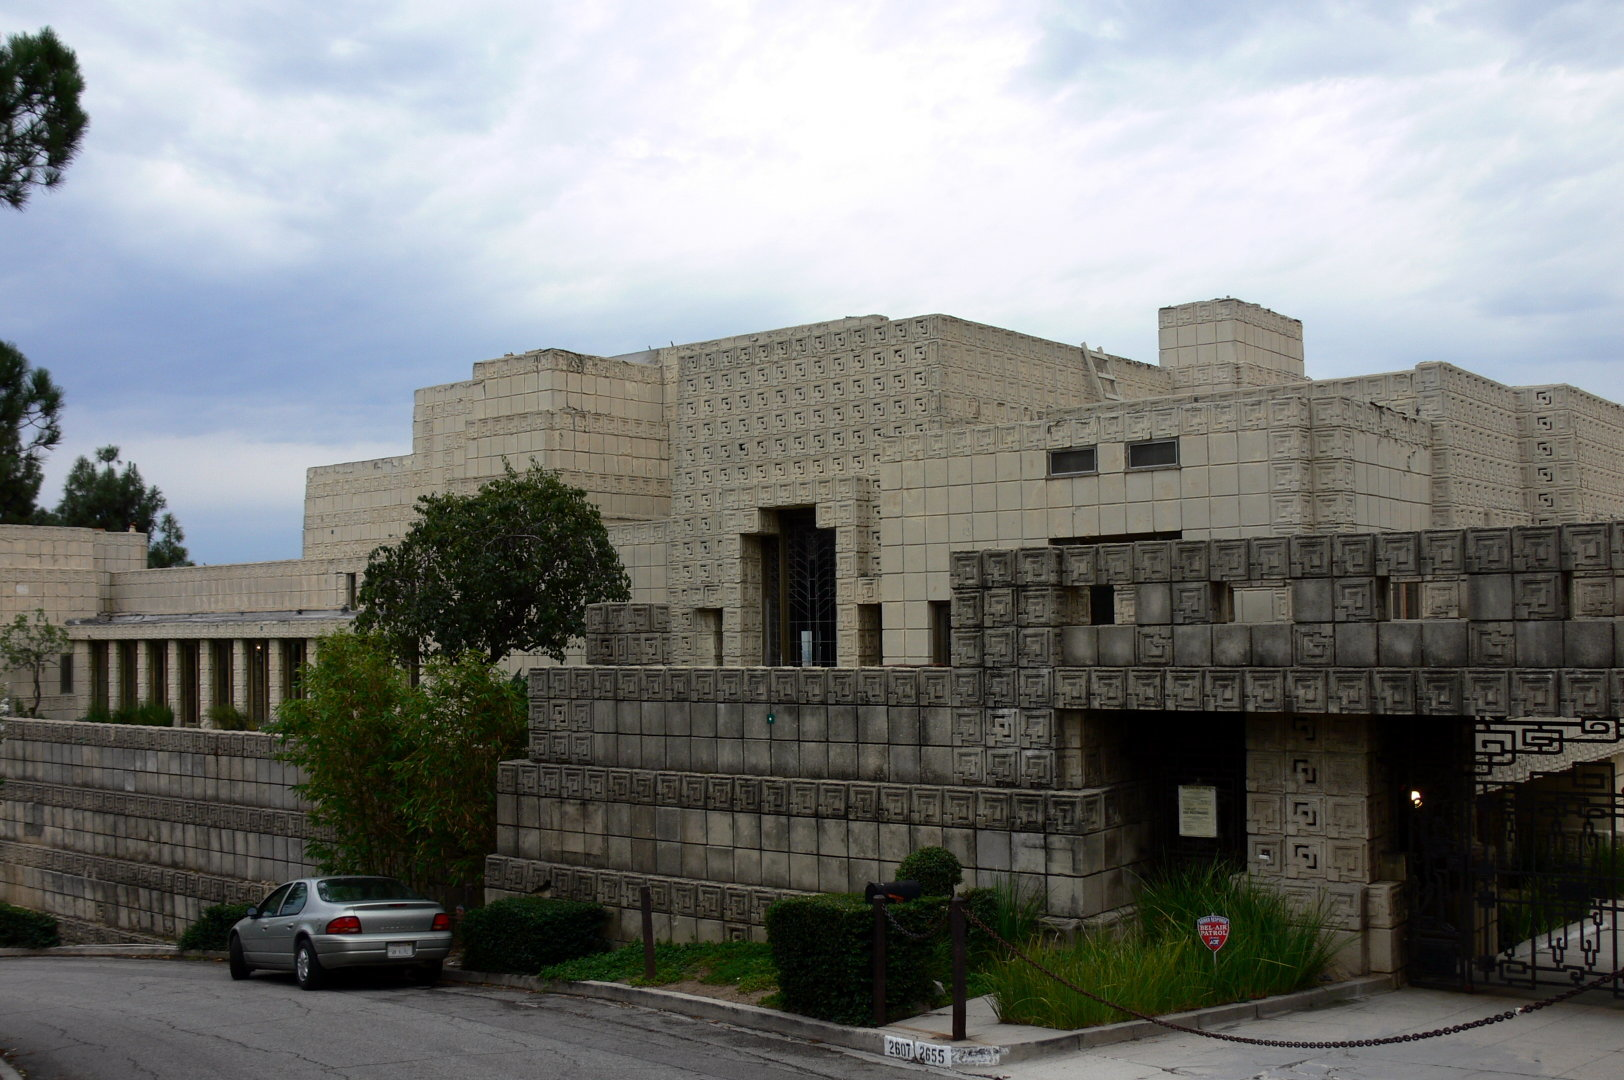 ennis House front view HD Wallpaper